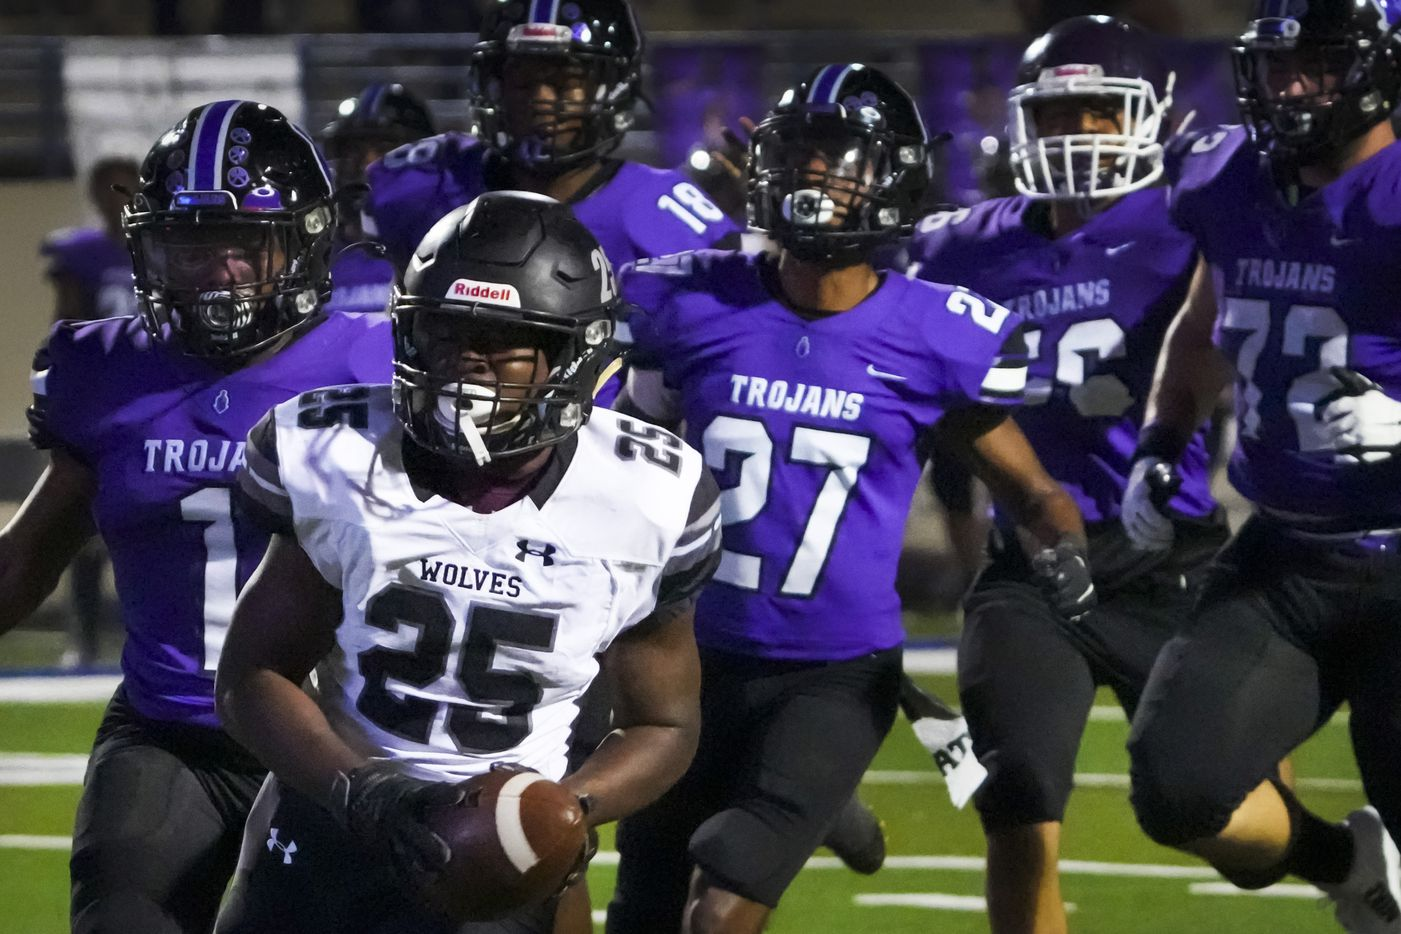 Mansfield Timberview's Javeon Madison (25) leaves the Waco University defense behind as he scores on a touchdown run during the first half of a high school football game at Waco ISD Stadium on Friday, Oct. 8, 2021, in Waco, Texas.